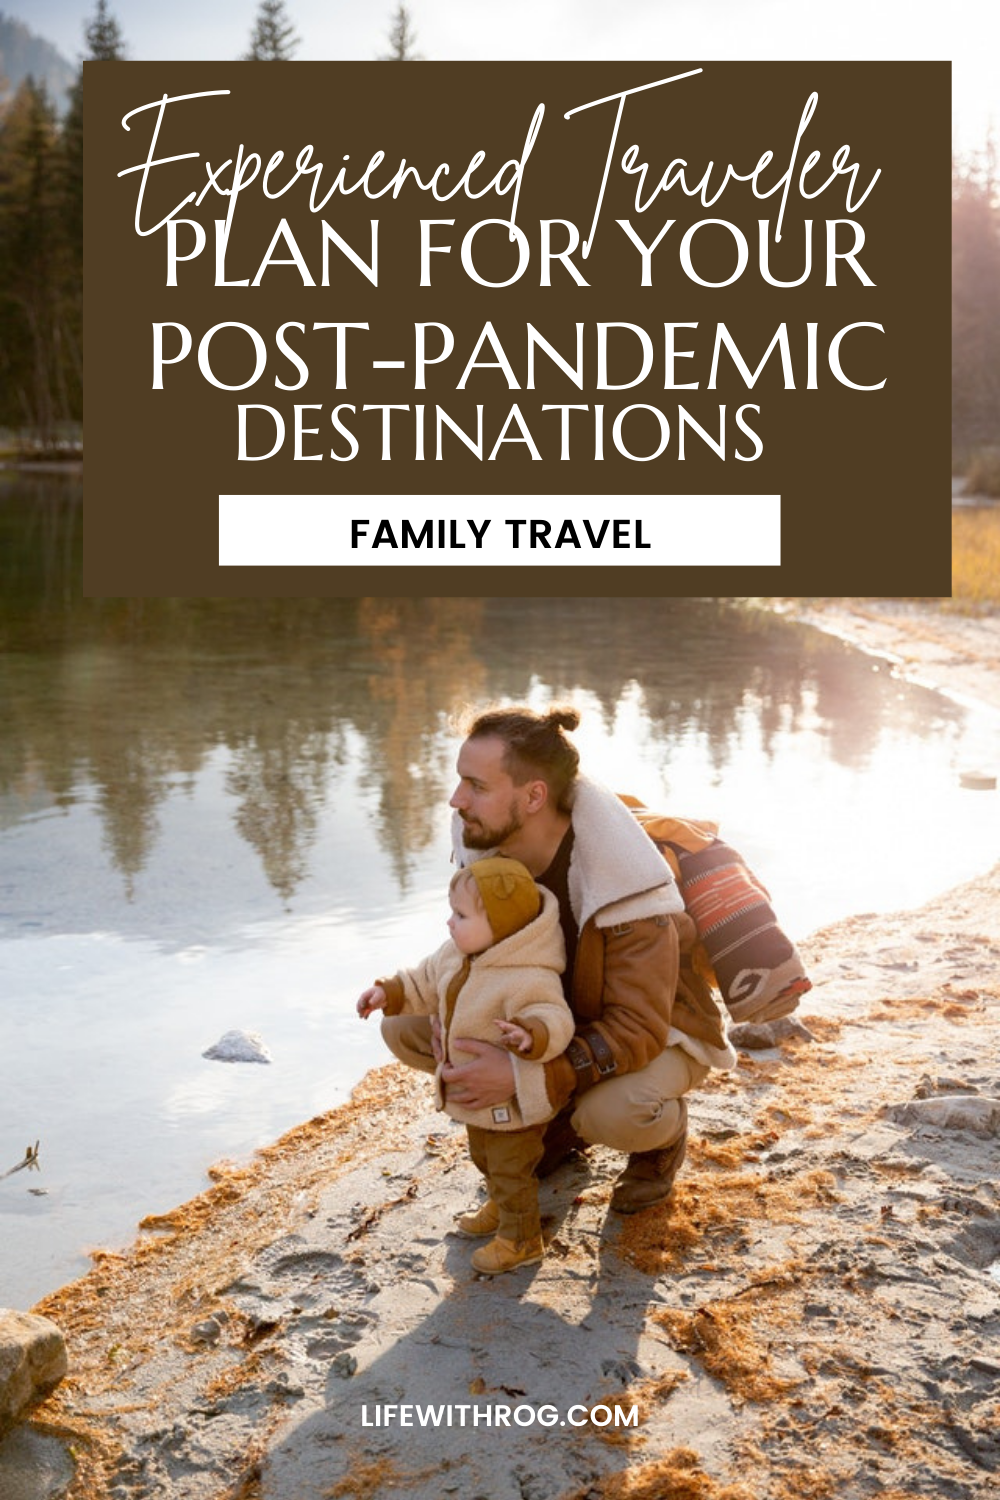 Experienced Traveler Plan for Your Post-Pandemic Family Travel